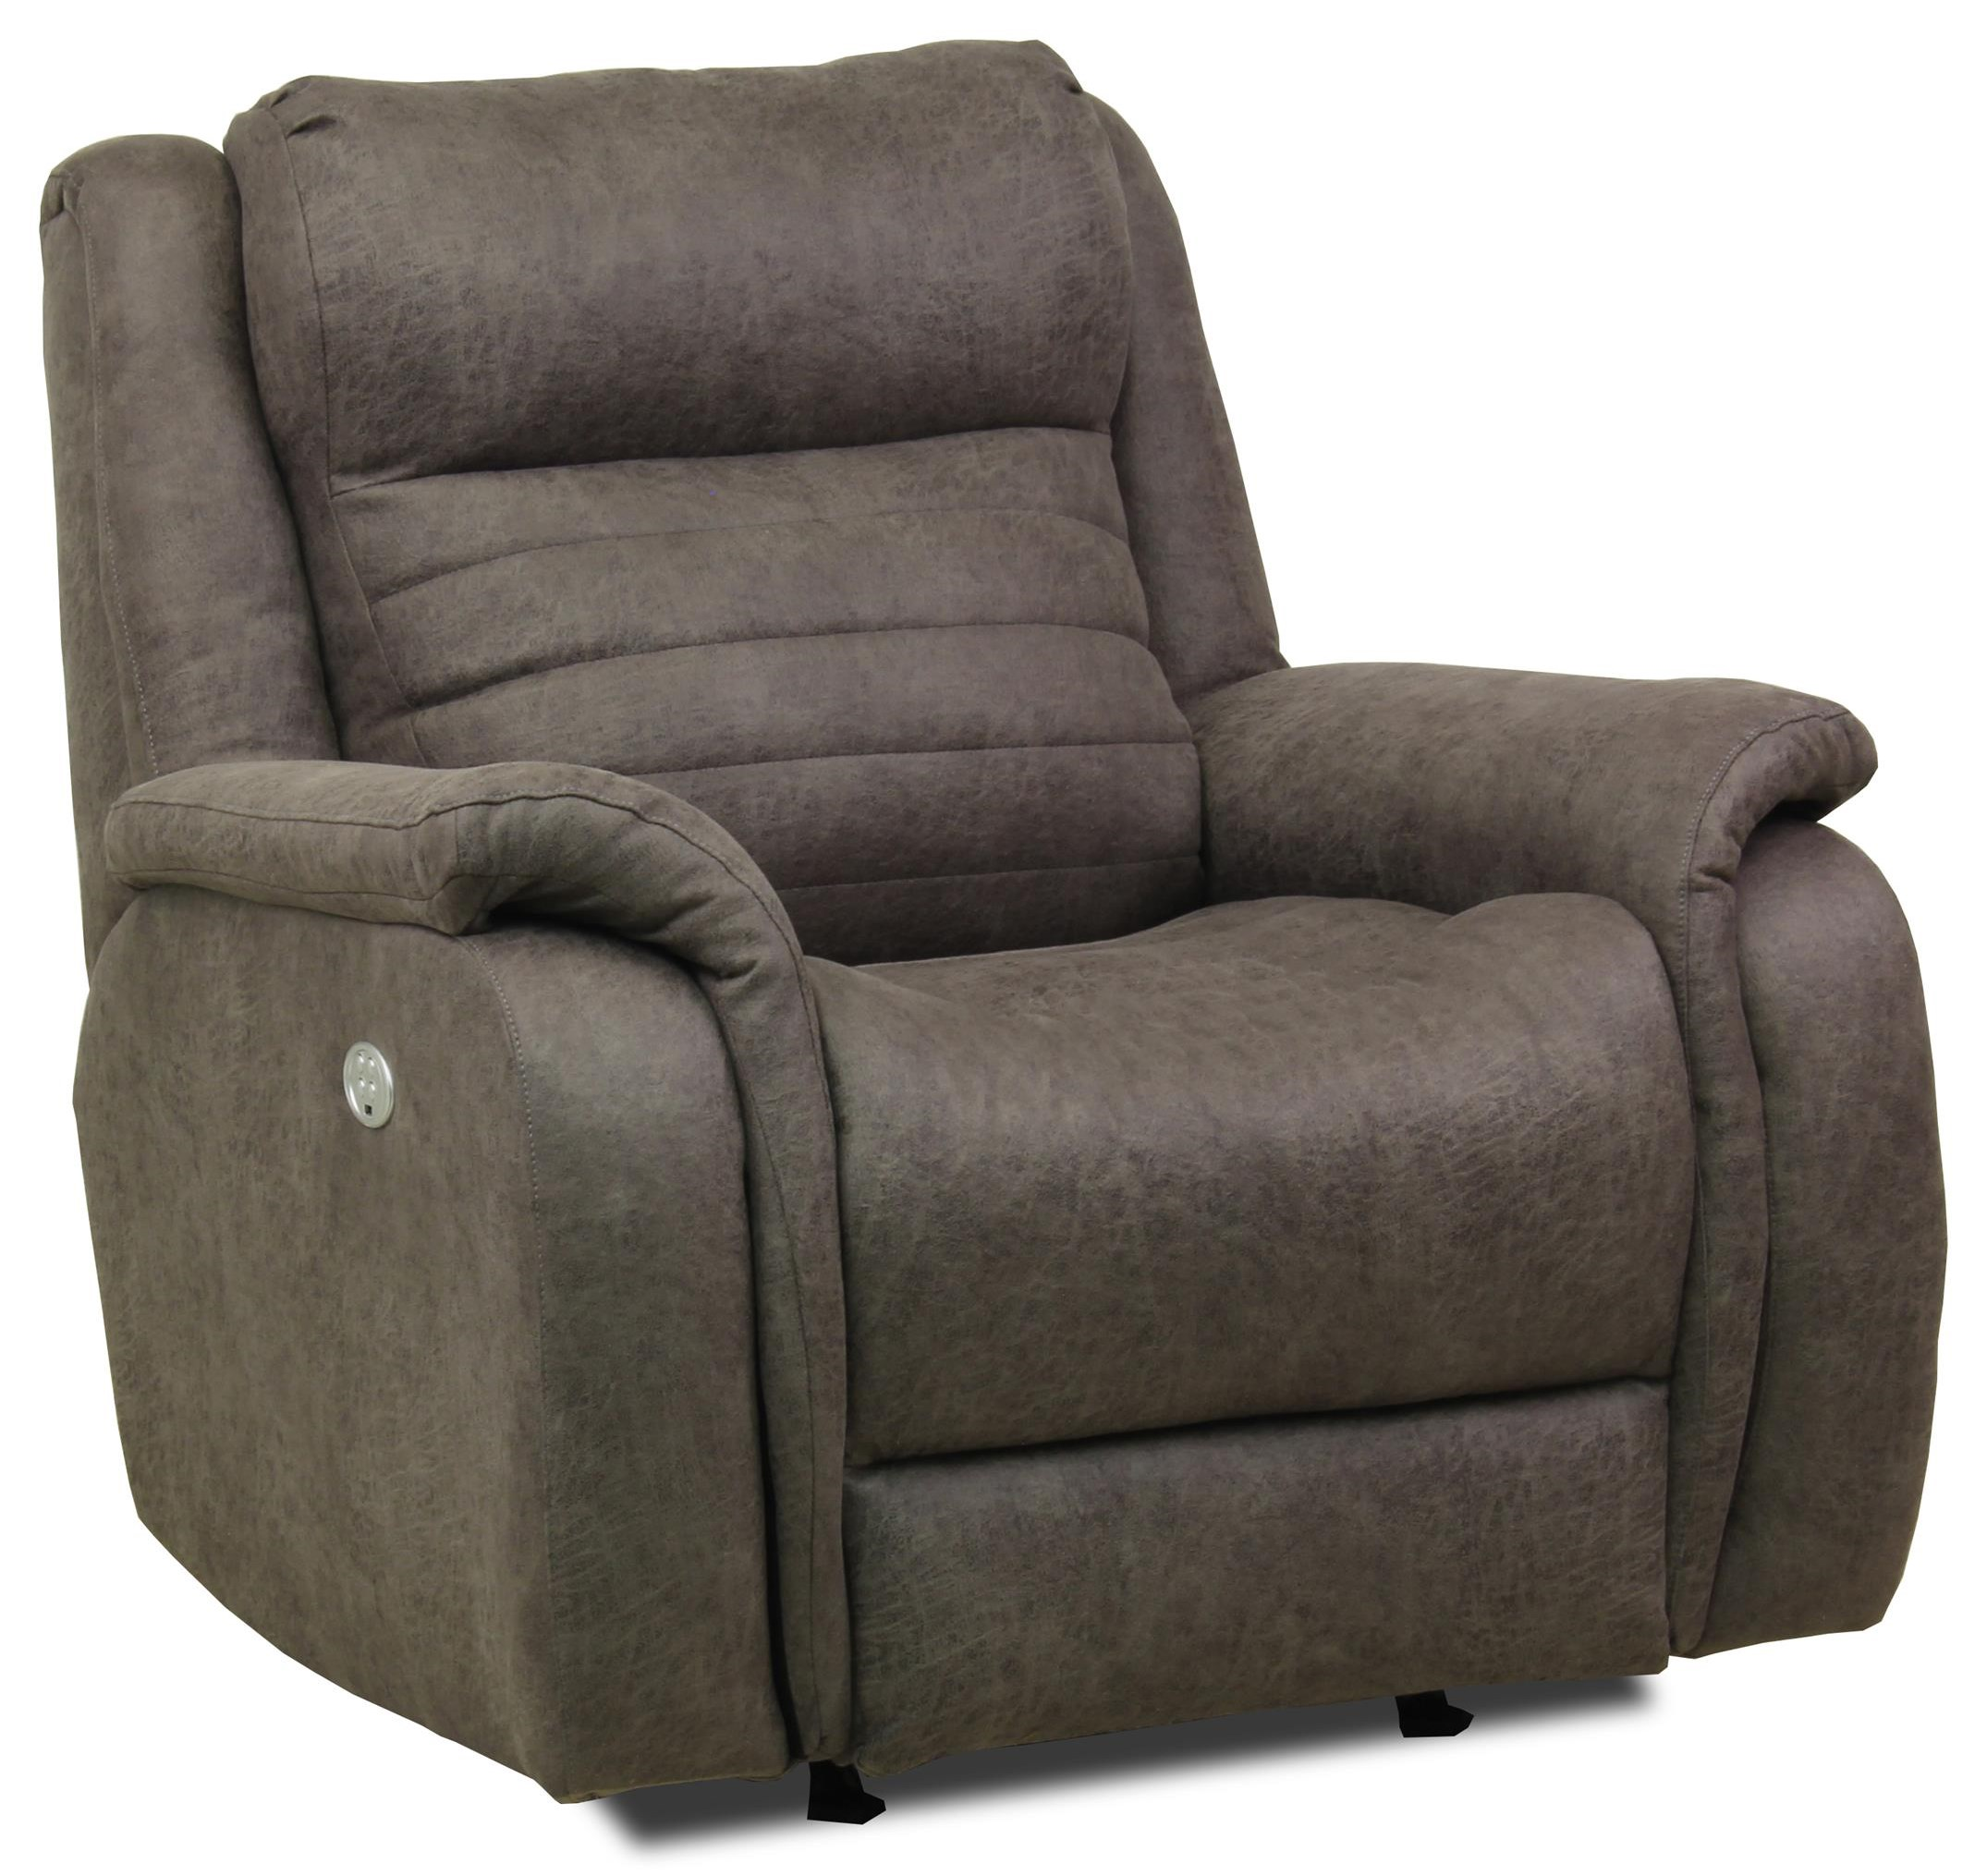 Essex Wireless Power Headrest Rocker Recliner by Southern Motion at Ruby Gordon Home